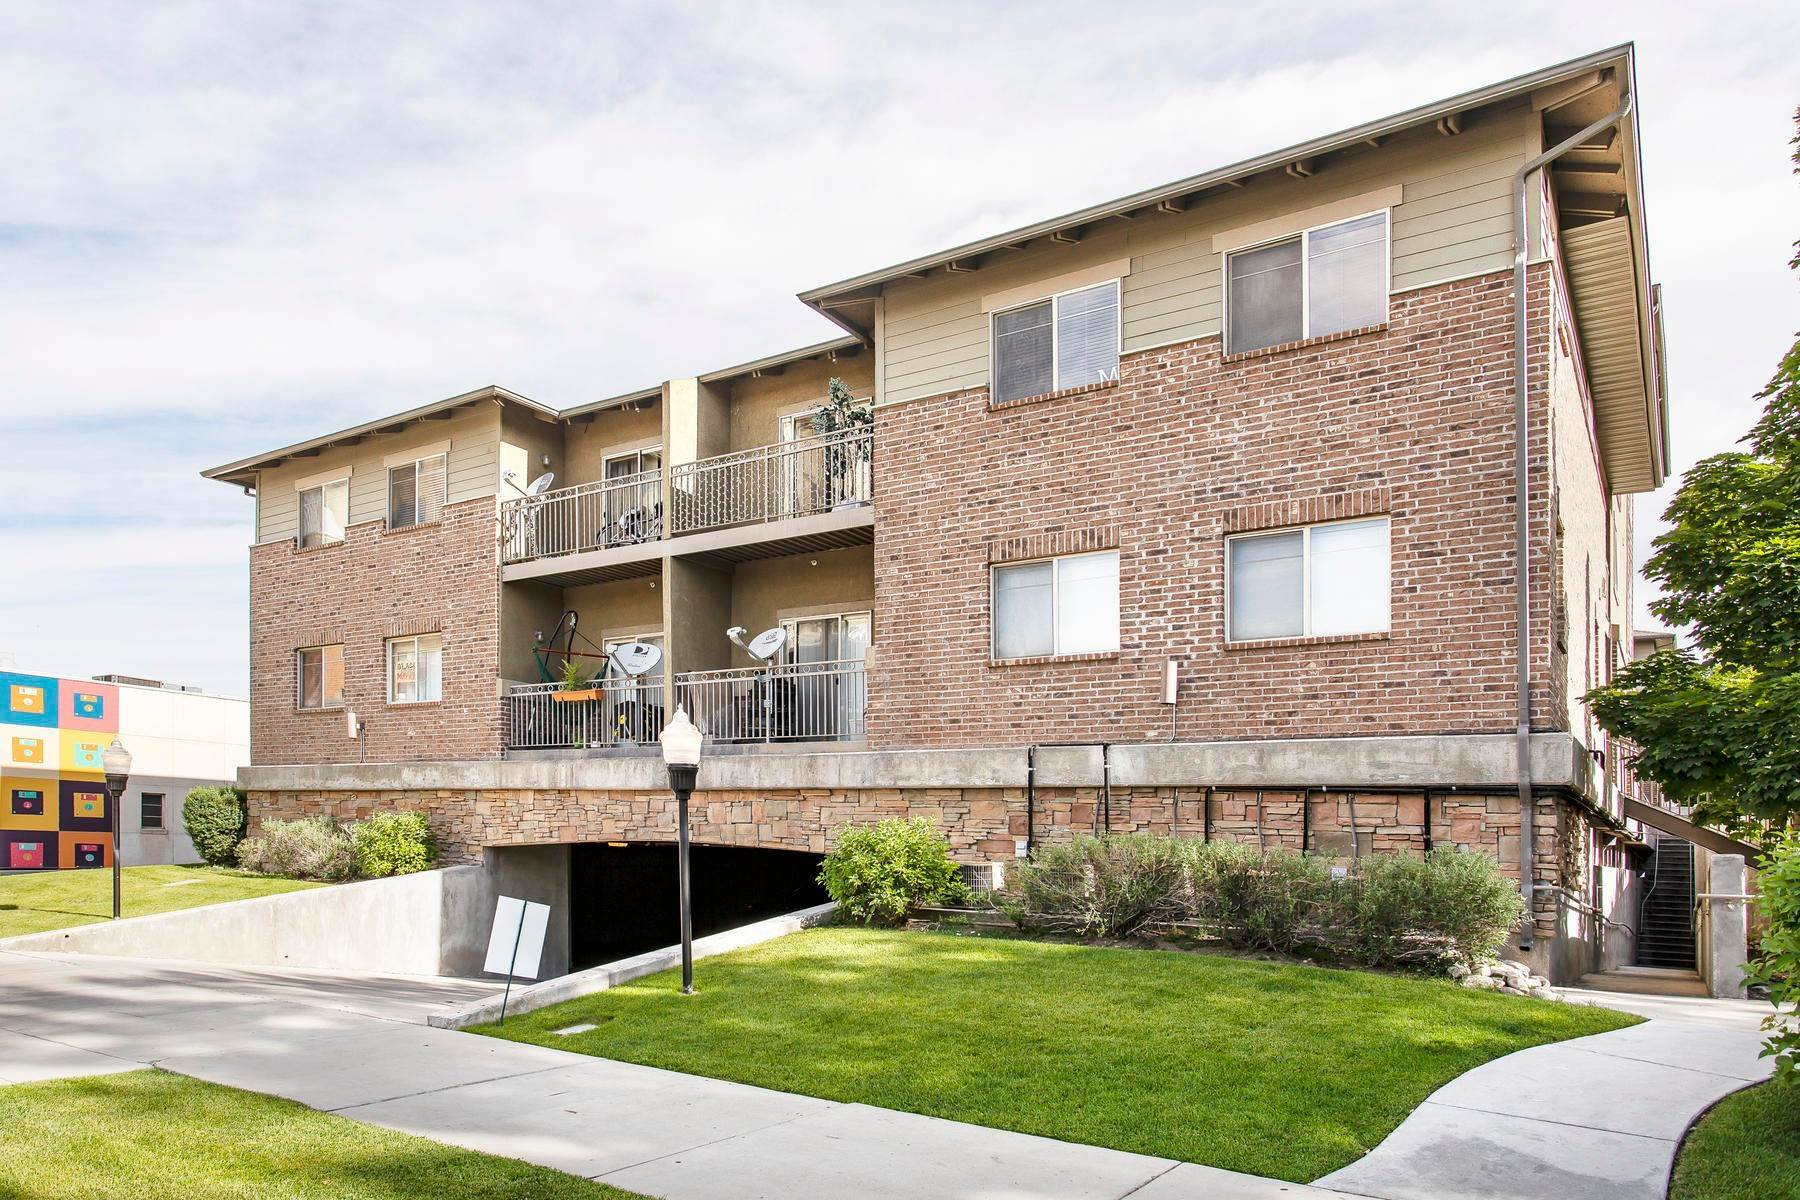 Condominiums for Sale at Great Location Within Walking Distance to BYU 69 E 200 N Provo, Utah 84606 United States